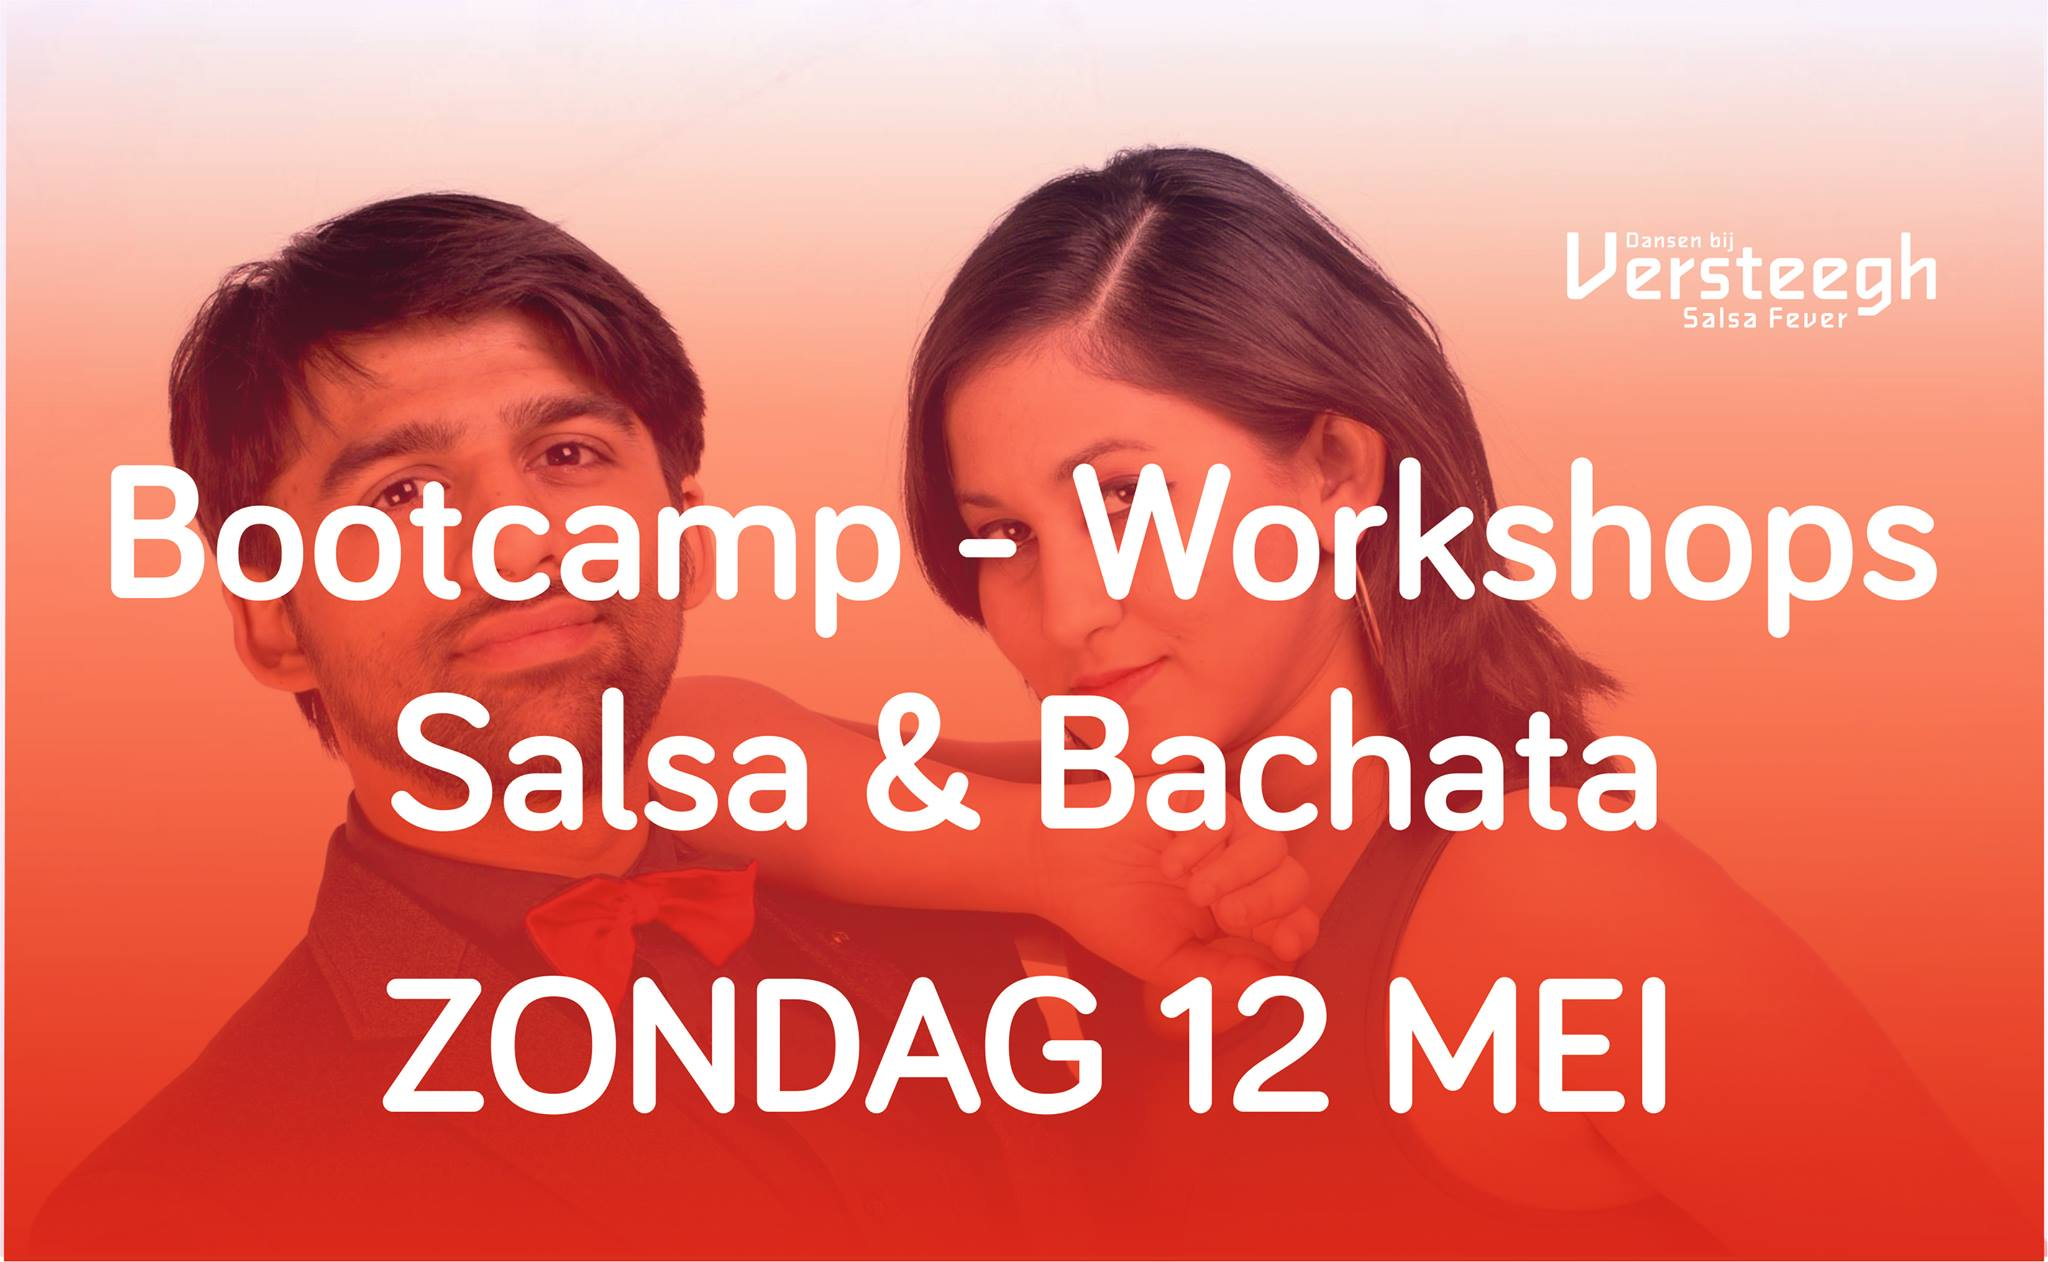 Uitgaansagenda Arnhem: Bootcamp Salsa & Bachata With Bhavin And Soonruta